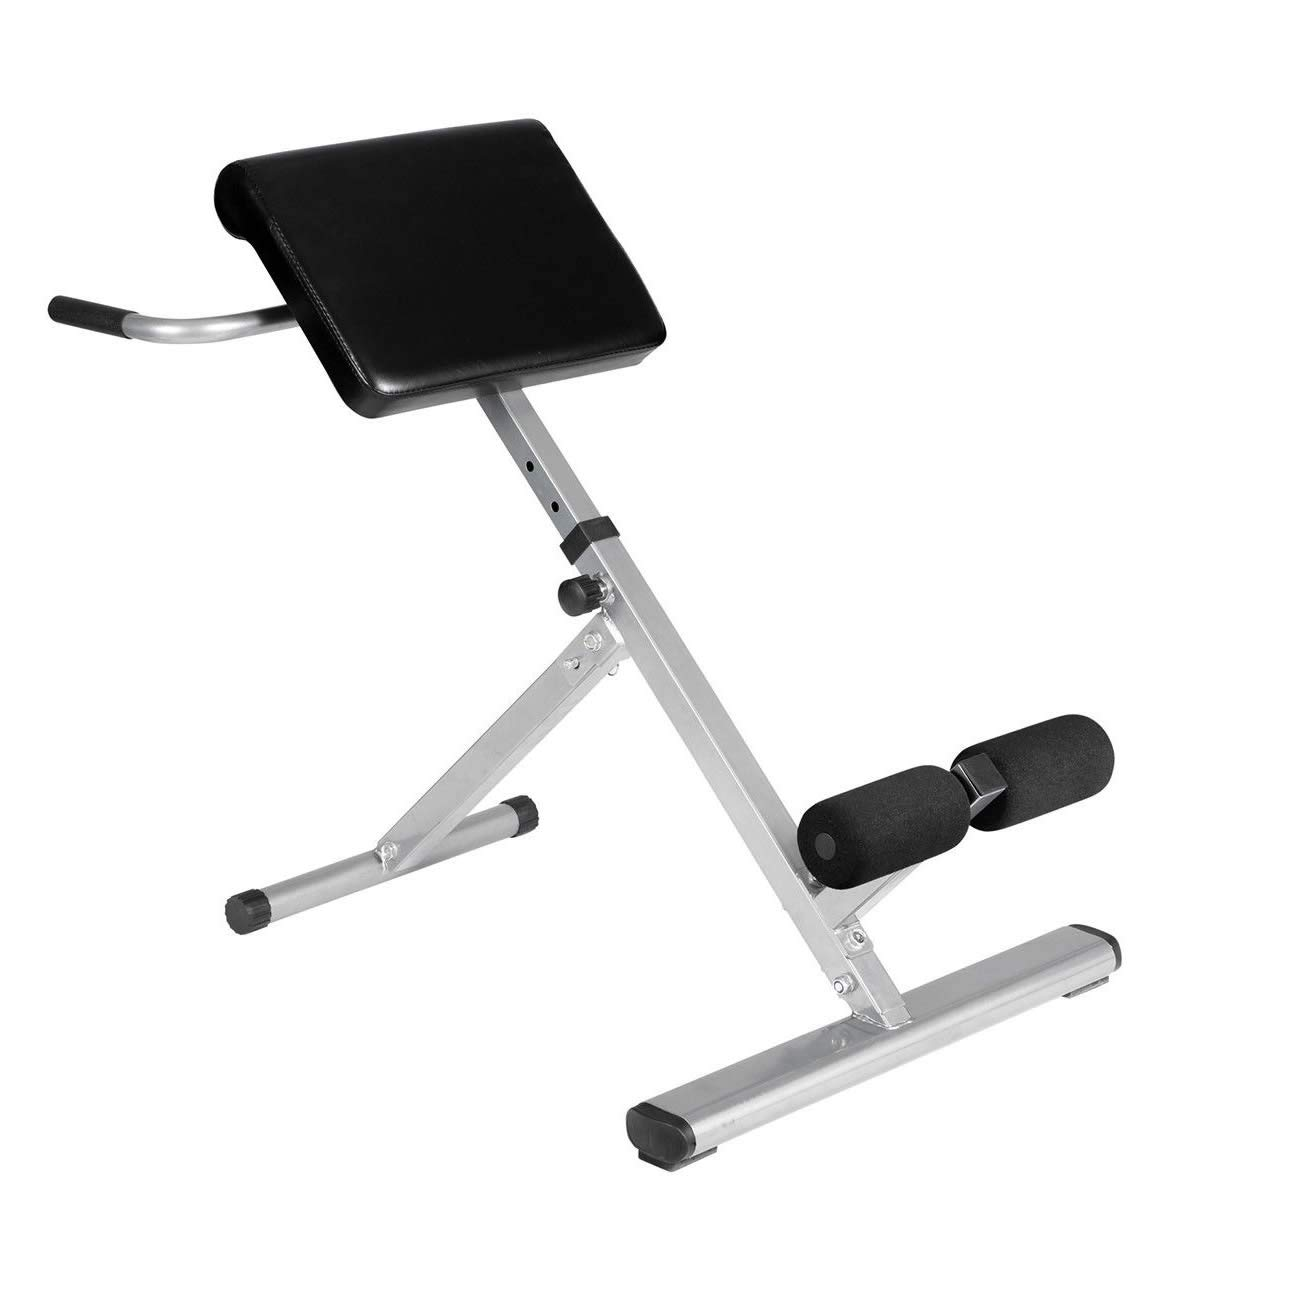 Cirocco Adjustable Roman Chair – Hyperextension Bench | Lower Back Gluteal Muscle Hamstring Abdominal Workout Strength Training Fitness Heavy Duty Support 300Lbs Help Pain Fatigue Circulation Flexible